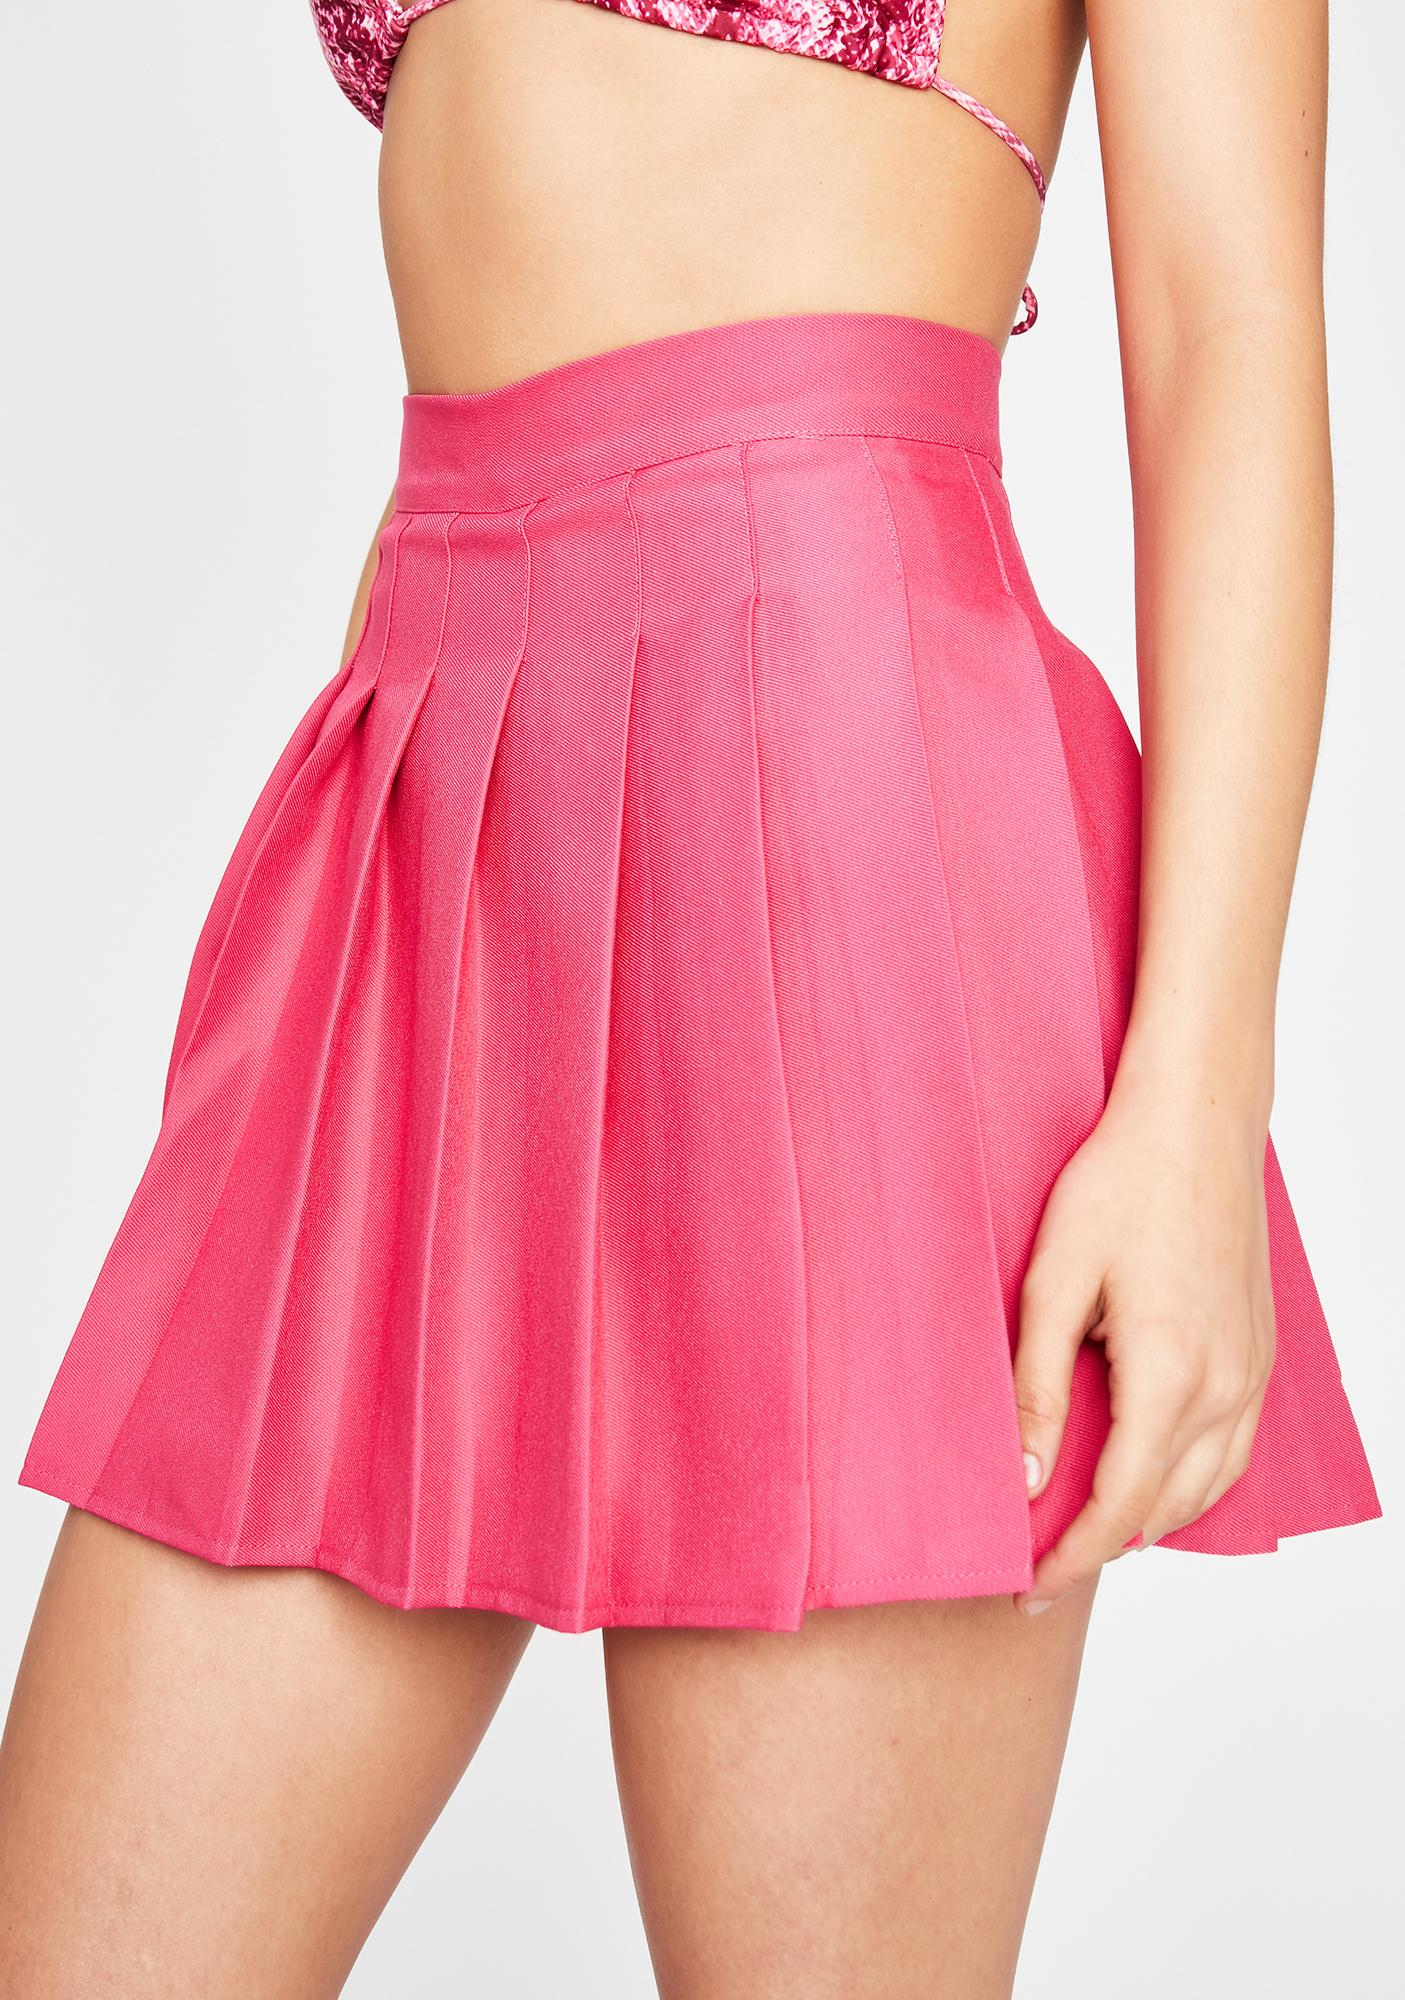 Lolly Just Like Candy Pleated Skirt